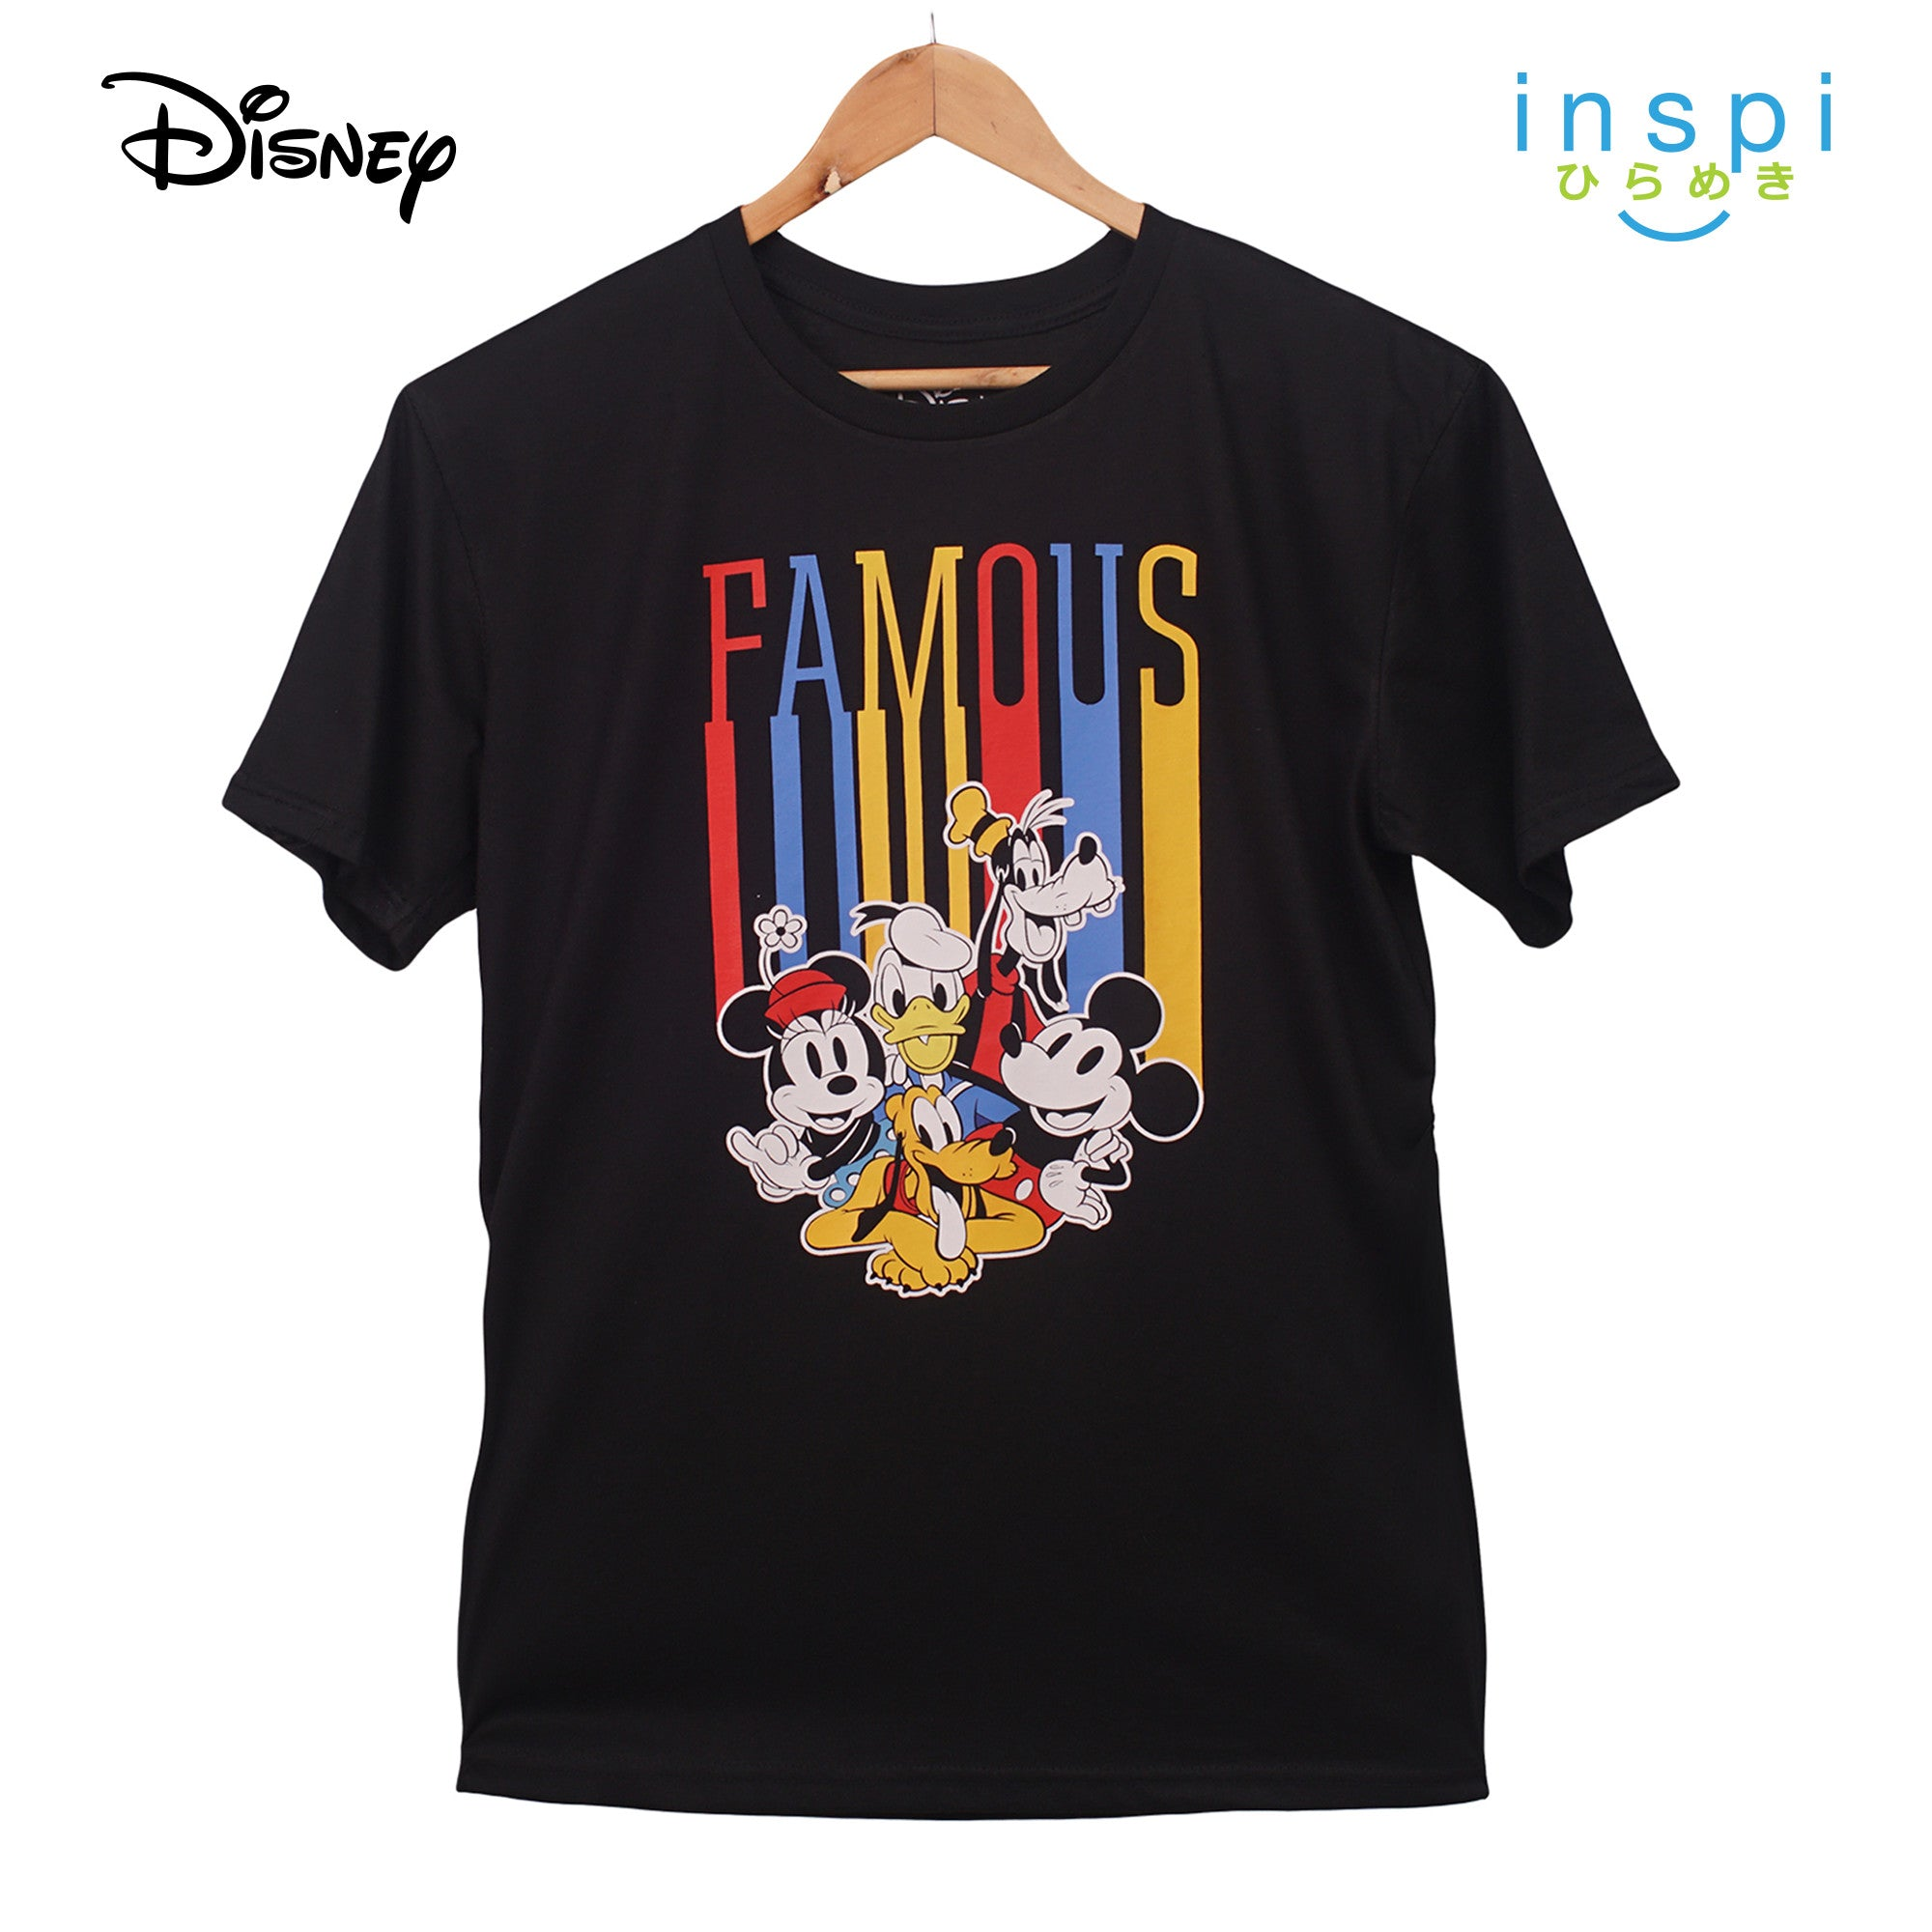 Disney Famous Mickey and Friends Graphic Tshirt in Black for Men Inspi Shirt